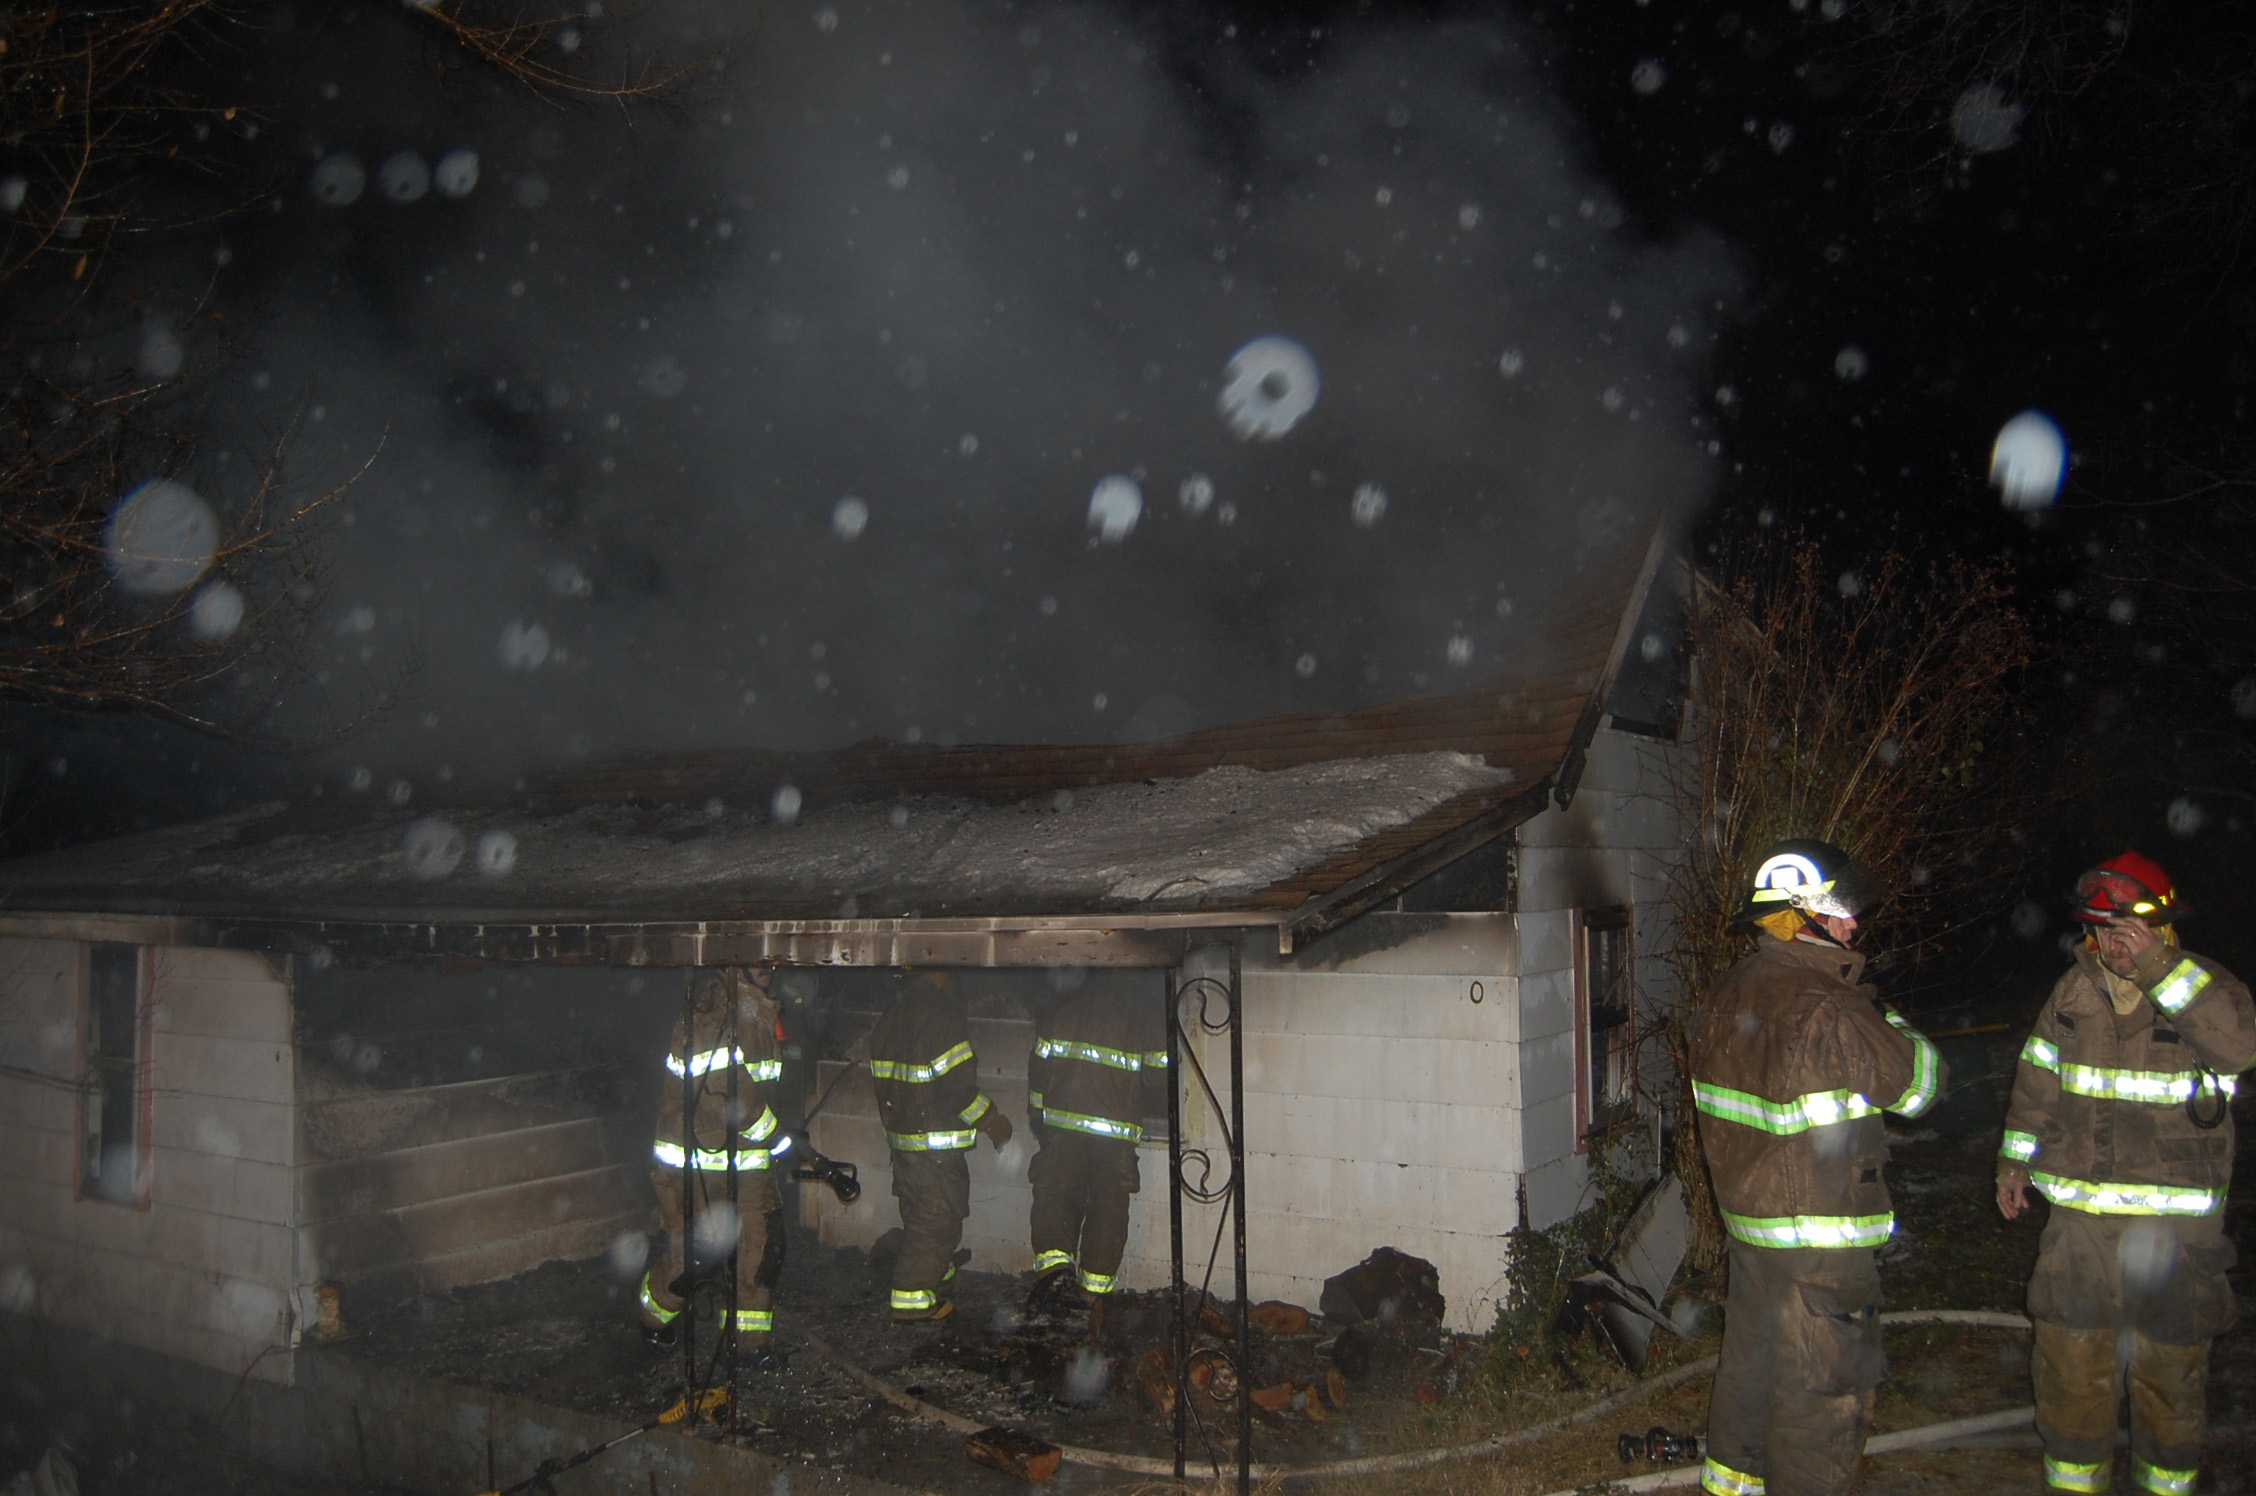 Firemen from the City of Ava and Ava Rural Fire departments battled freezing rain and snow, as well as fire, at this house fire in east Ava last Friday night.